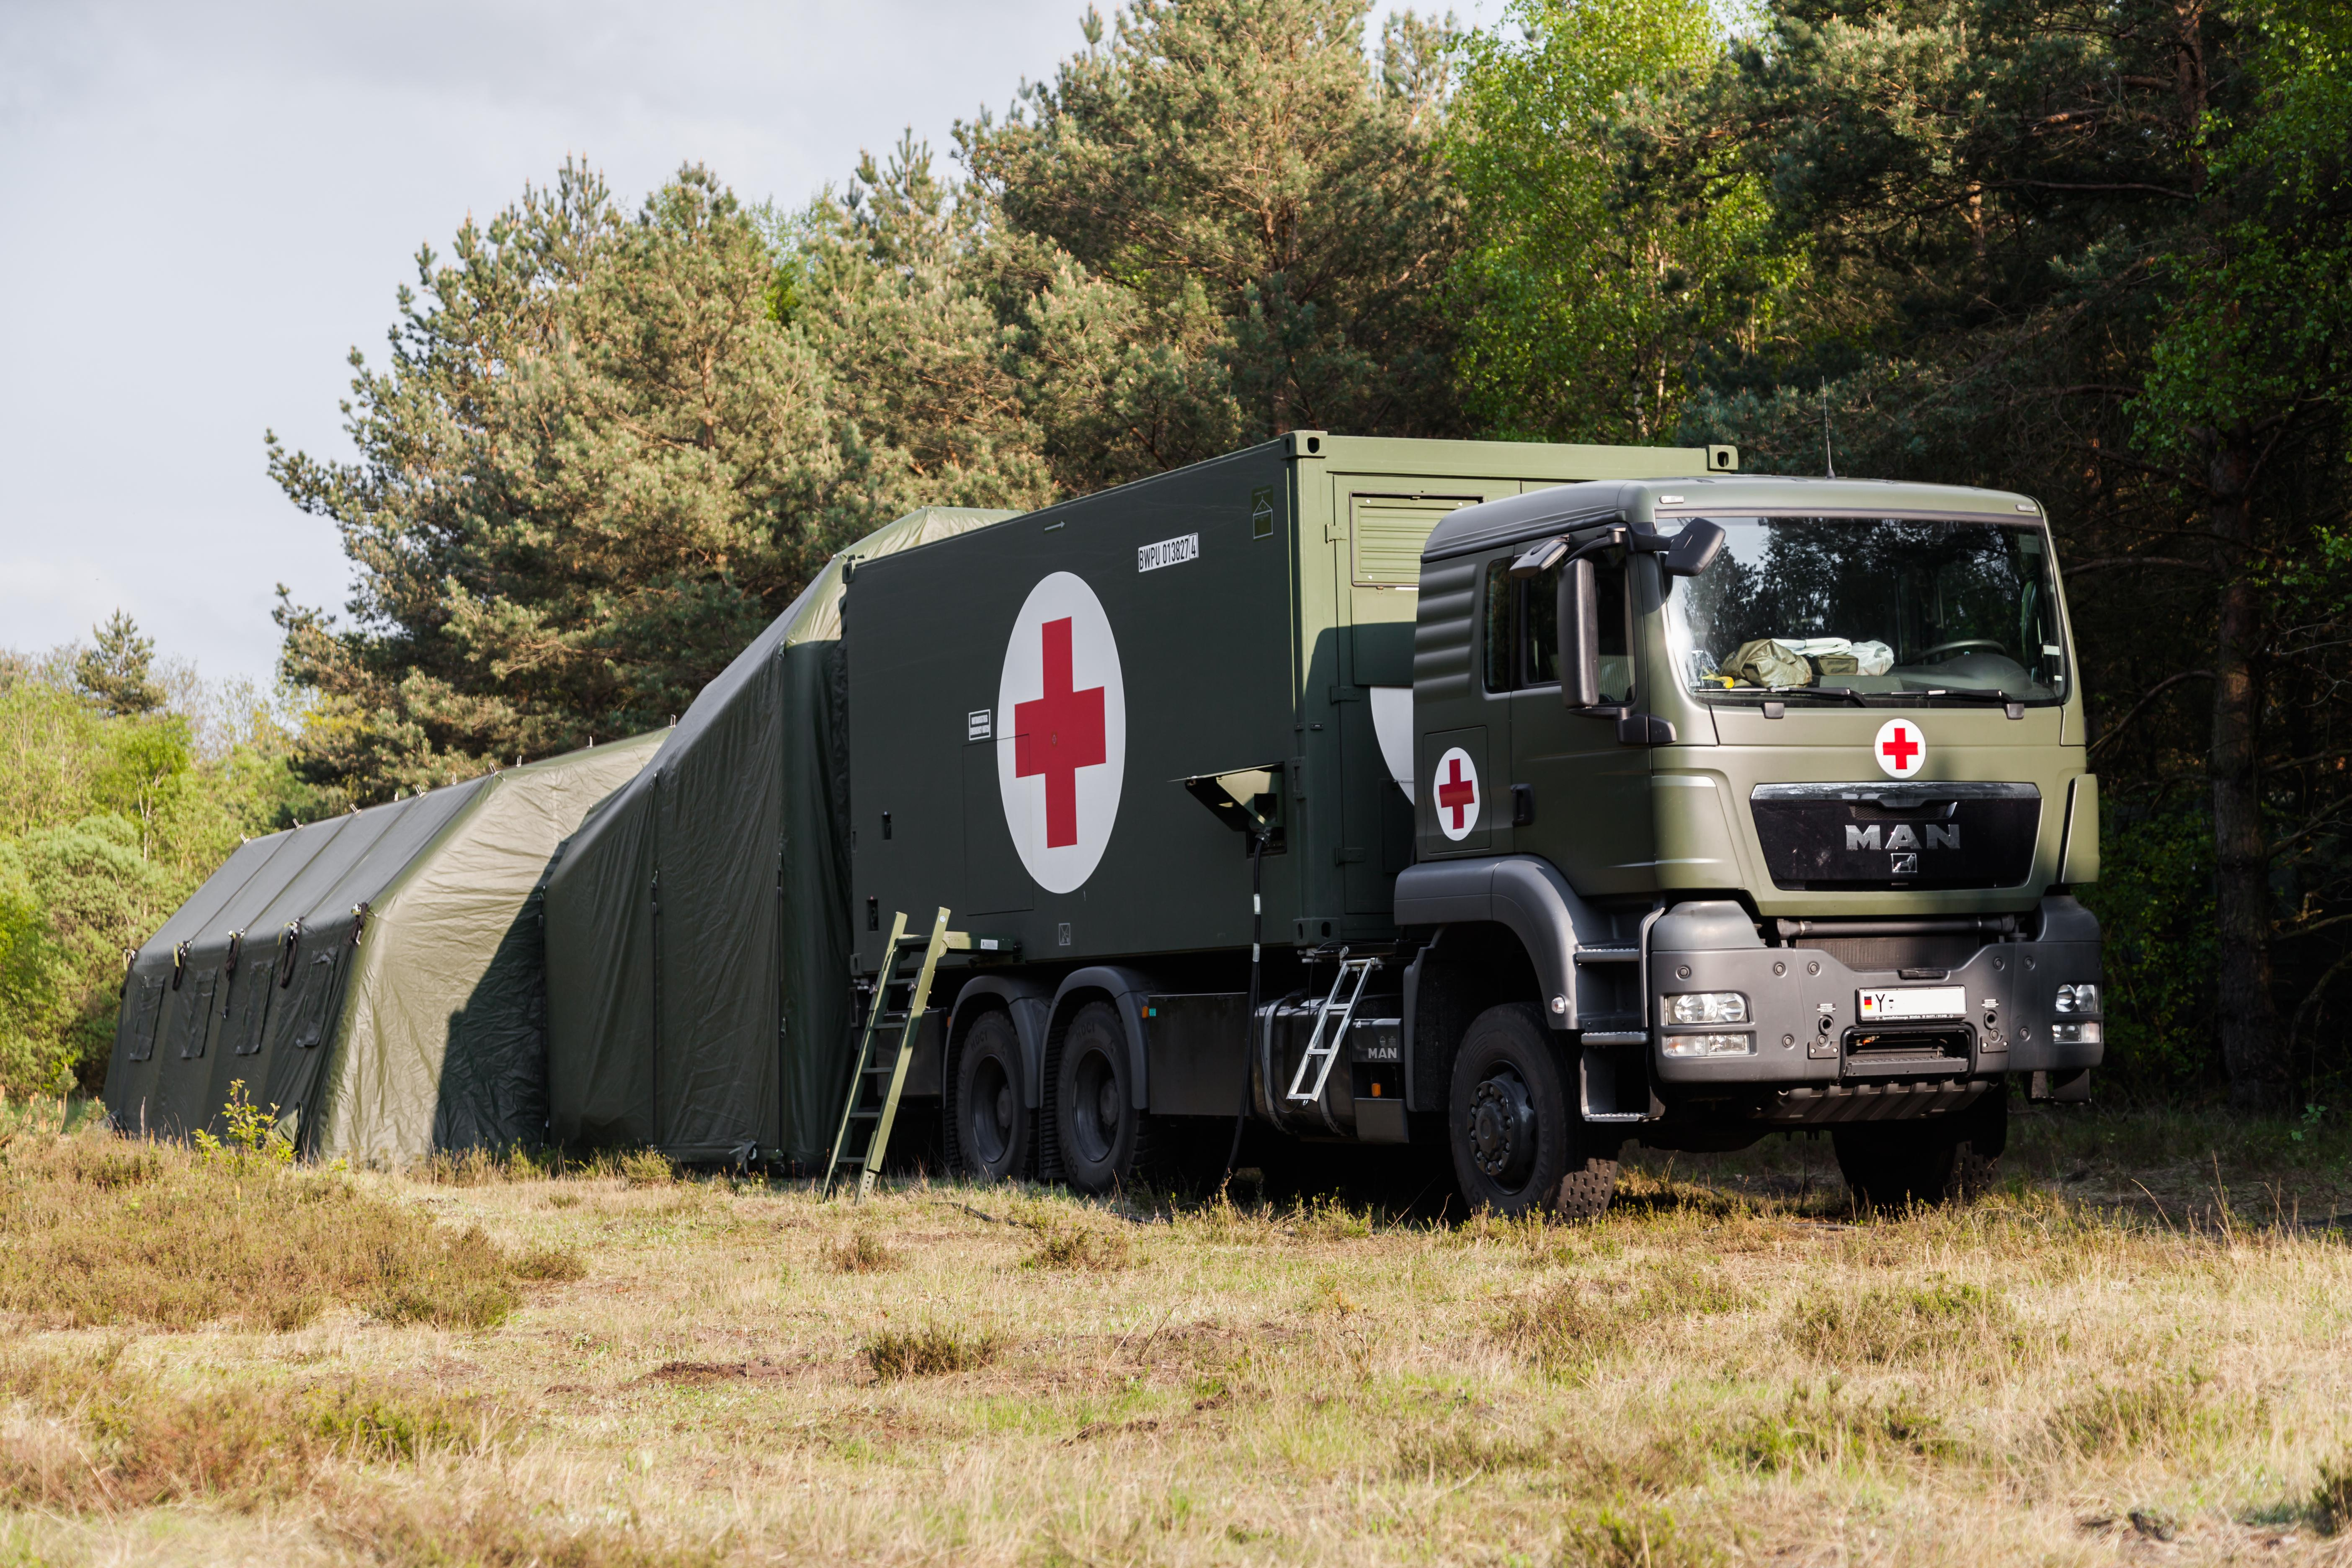 Medical transport vehicle with red cross on side